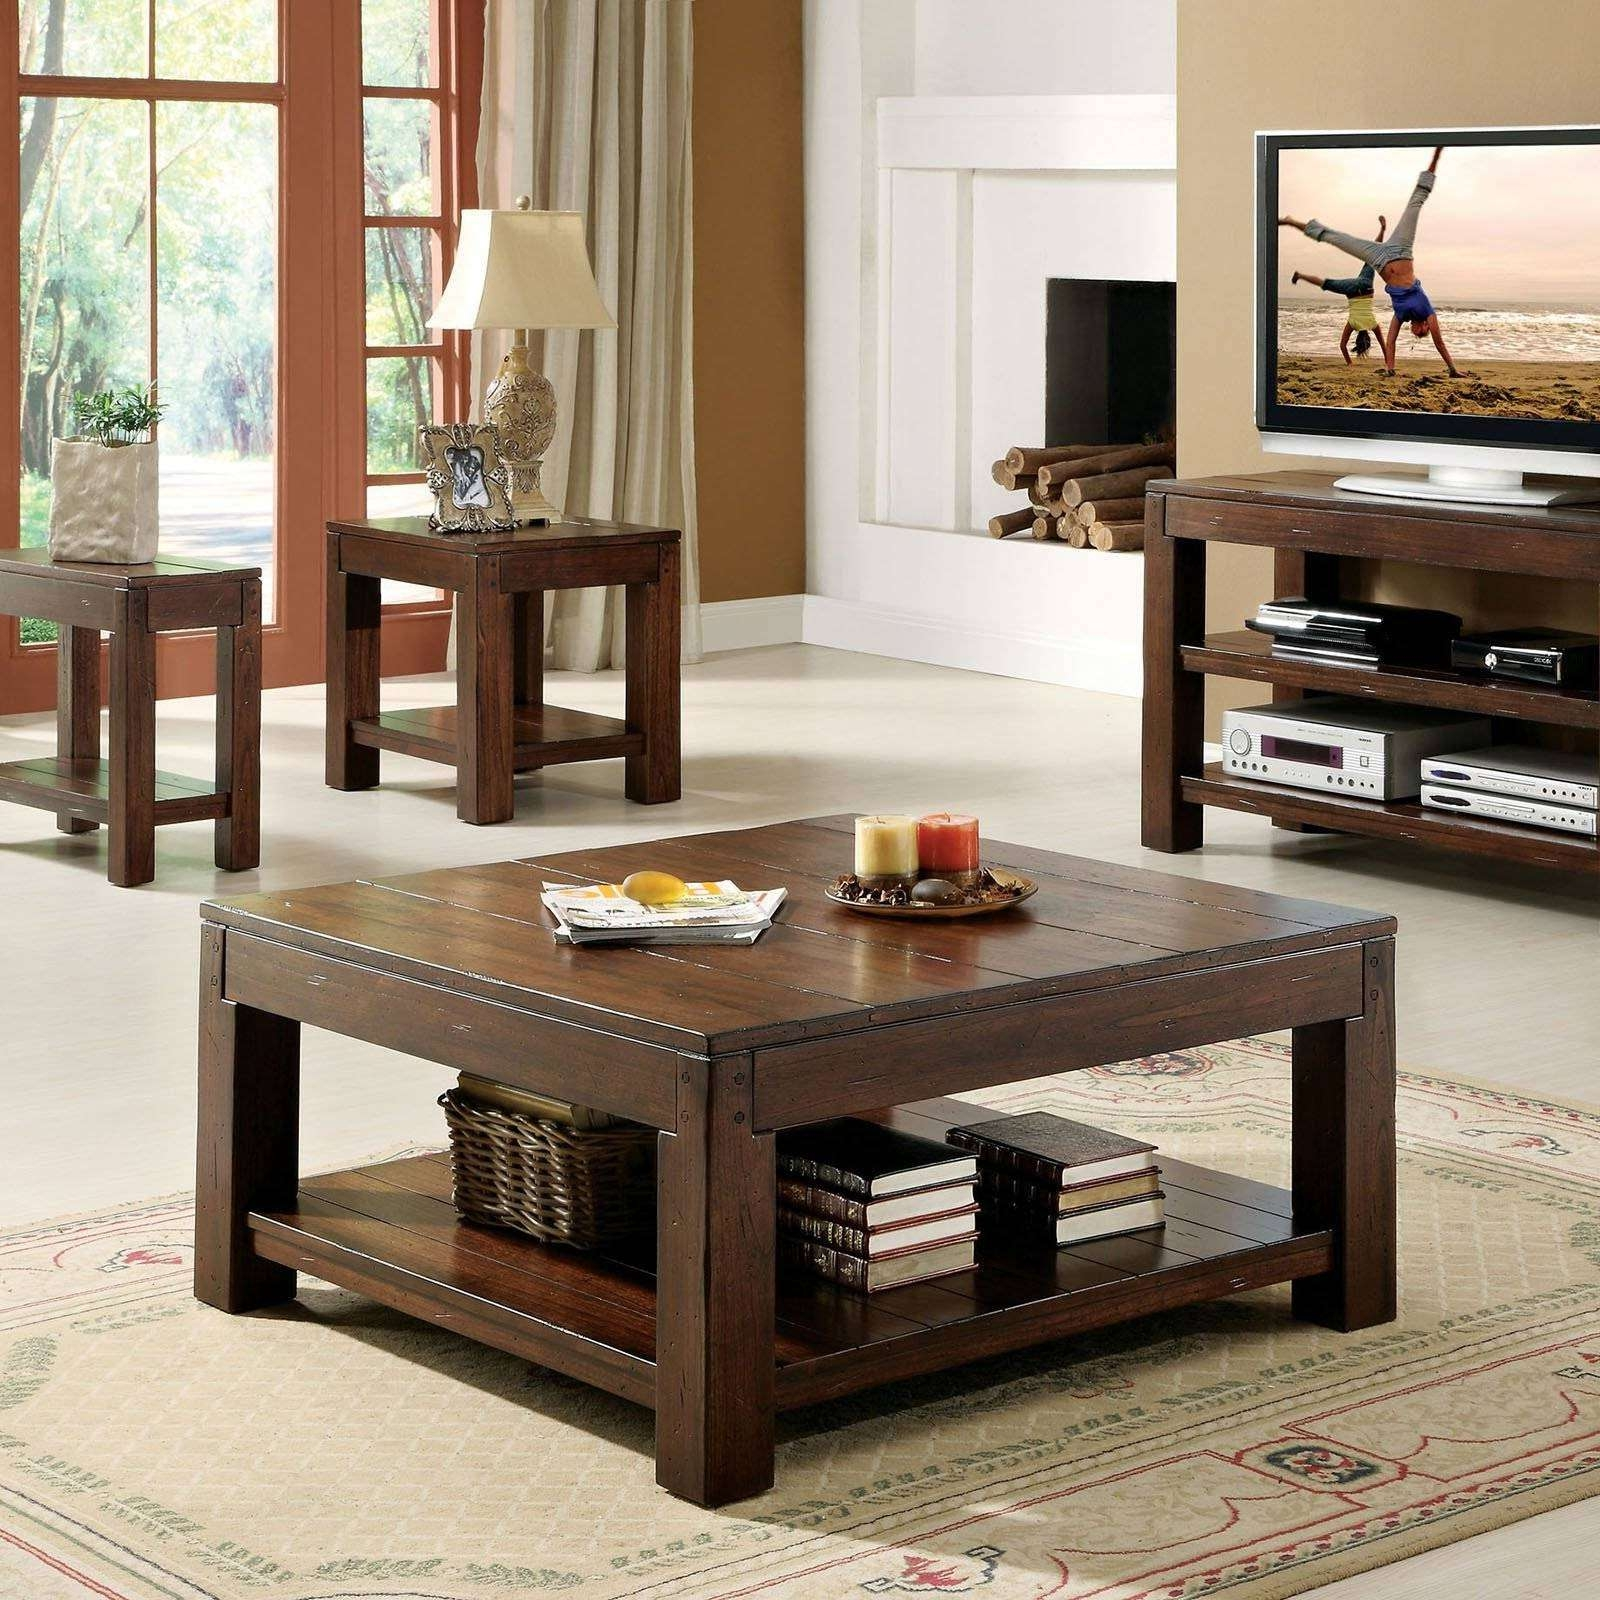 Coffee Table : Awesome Wooden Coffee Table And Tv Stand Coffee Pertaining To Rustic Coffee Table And Tv Stands (View 2 of 15)